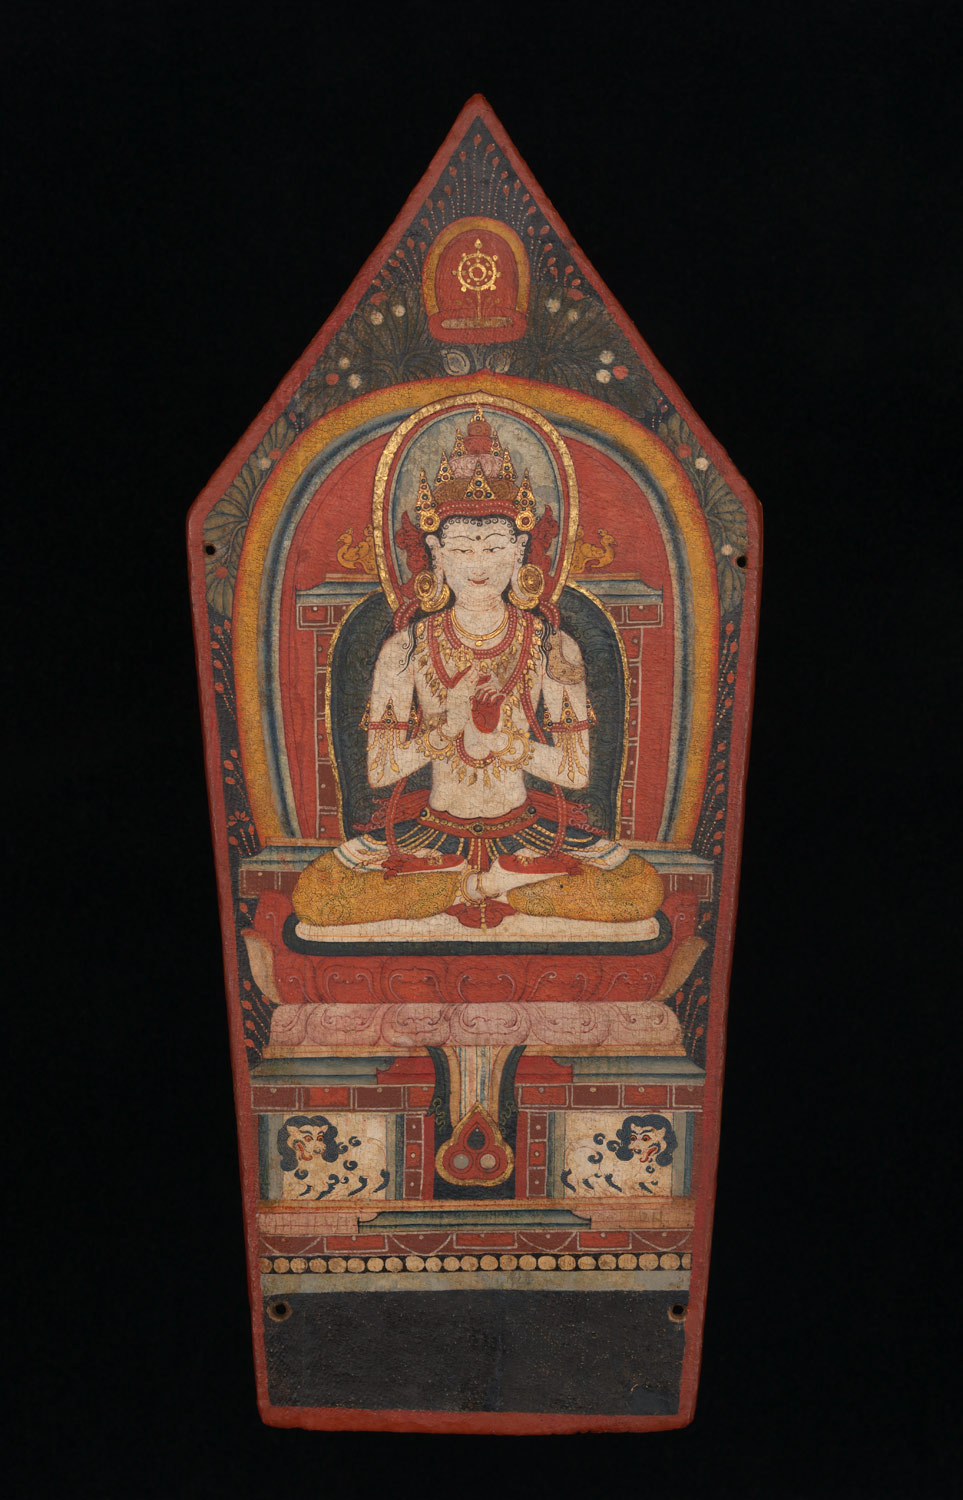 Panel from a Buddhist Ritual Crown Depicting Vairochana